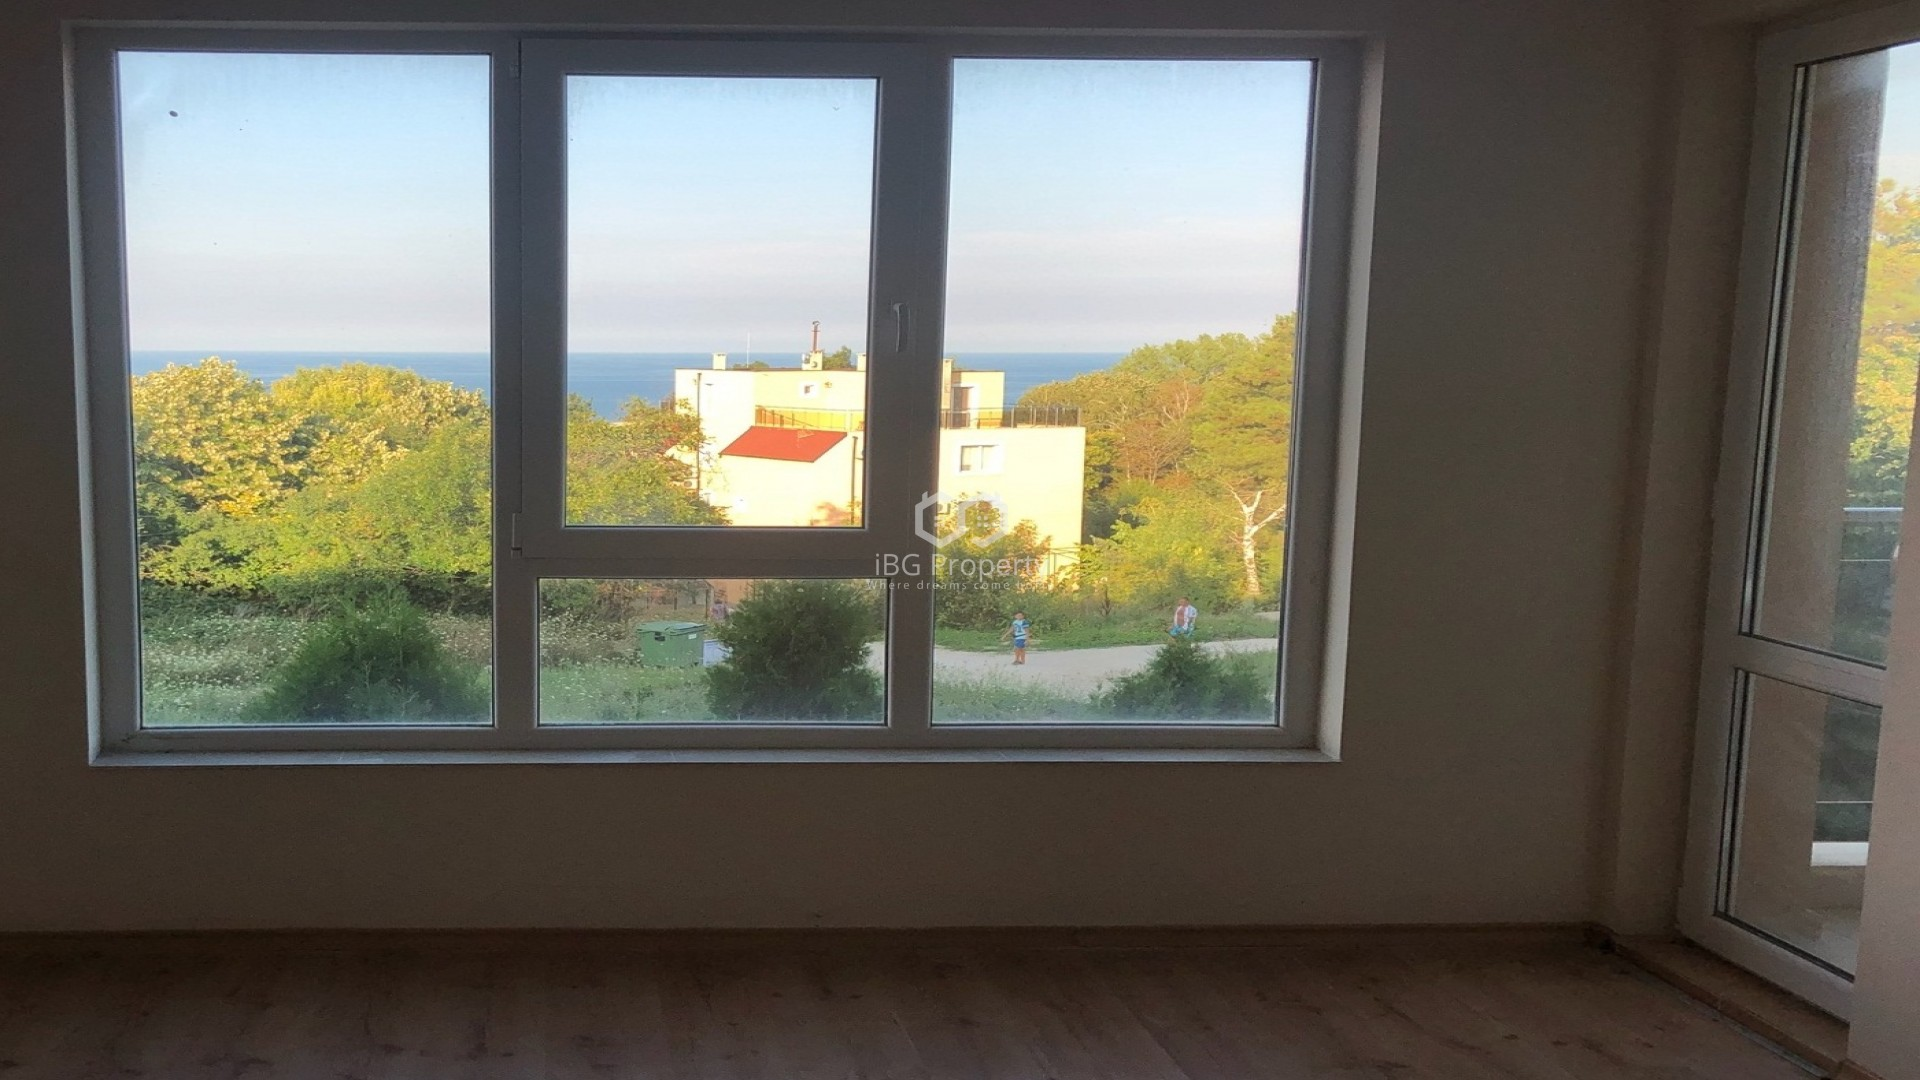 One bedroom apartment Byala 66 m2